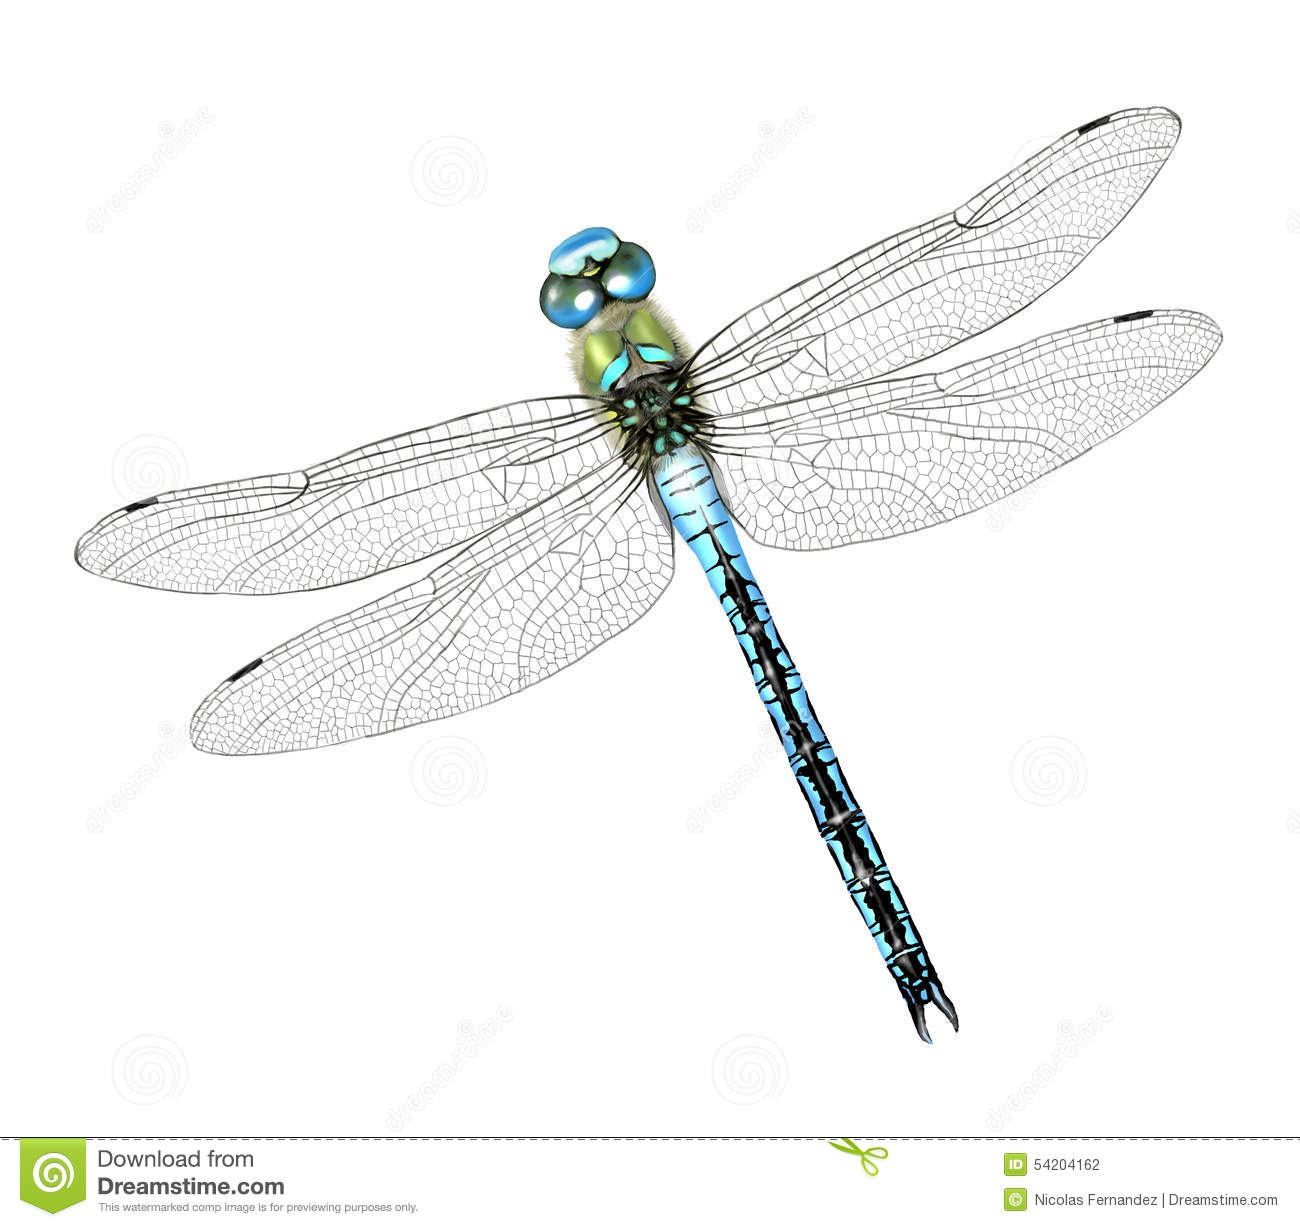 Dragonfly Illustration moreover Snoop Dogg further 02012005 1 as well Extra Prints in addition Drawing Cartoon Dogs Step Step. on dog drawings pictures